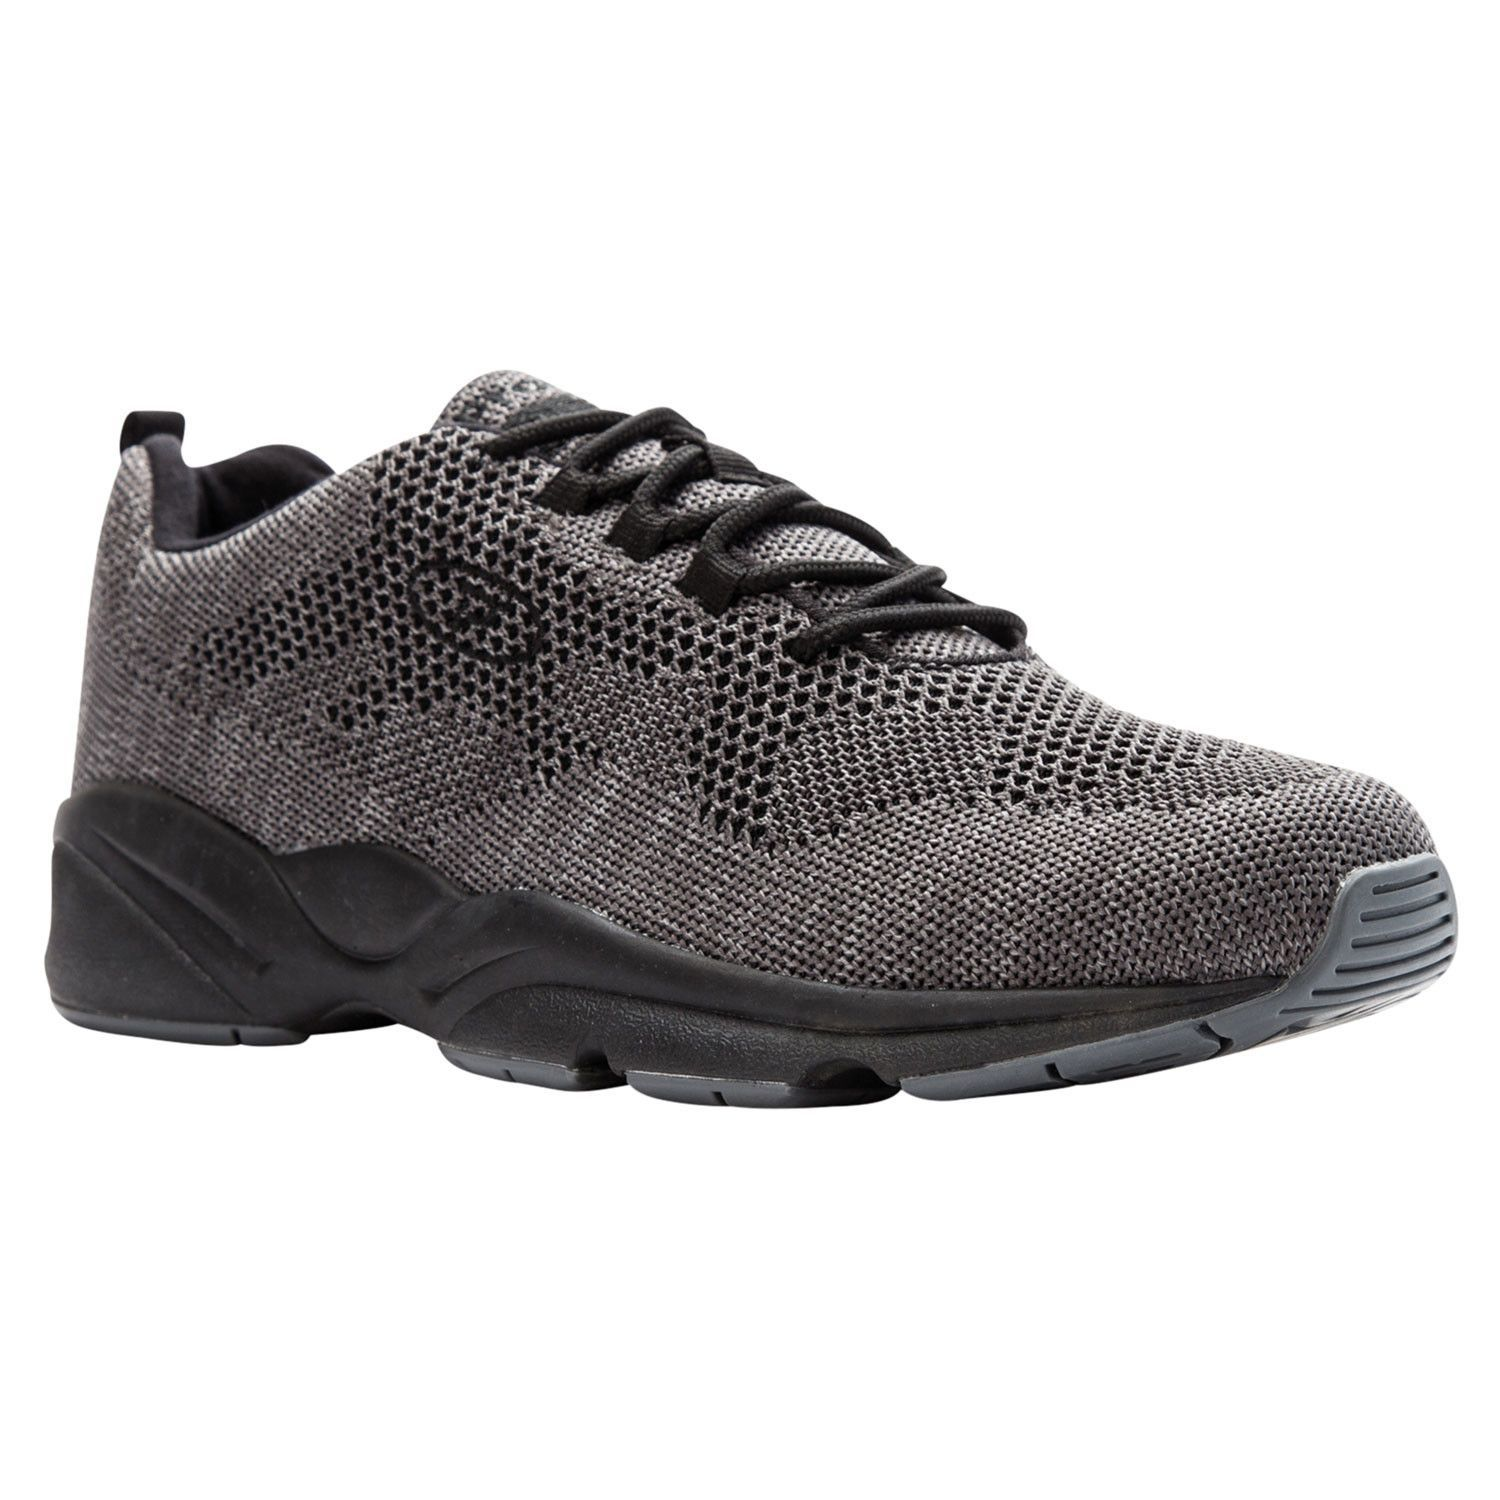 Mens walking shoes, Fly shoes, Wide